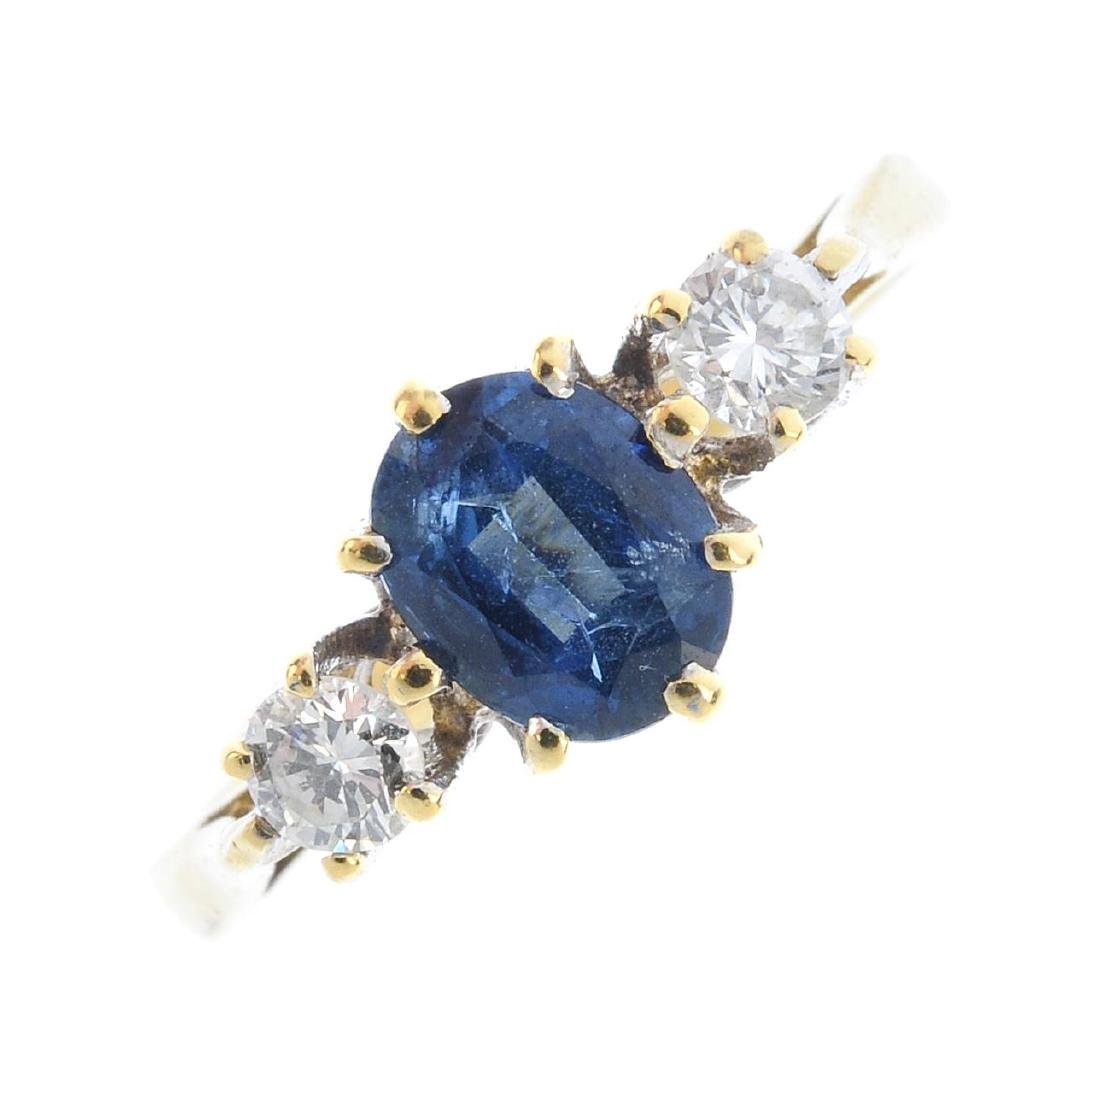 An 18ct gold sapphire and diamond ring. The oval-shape